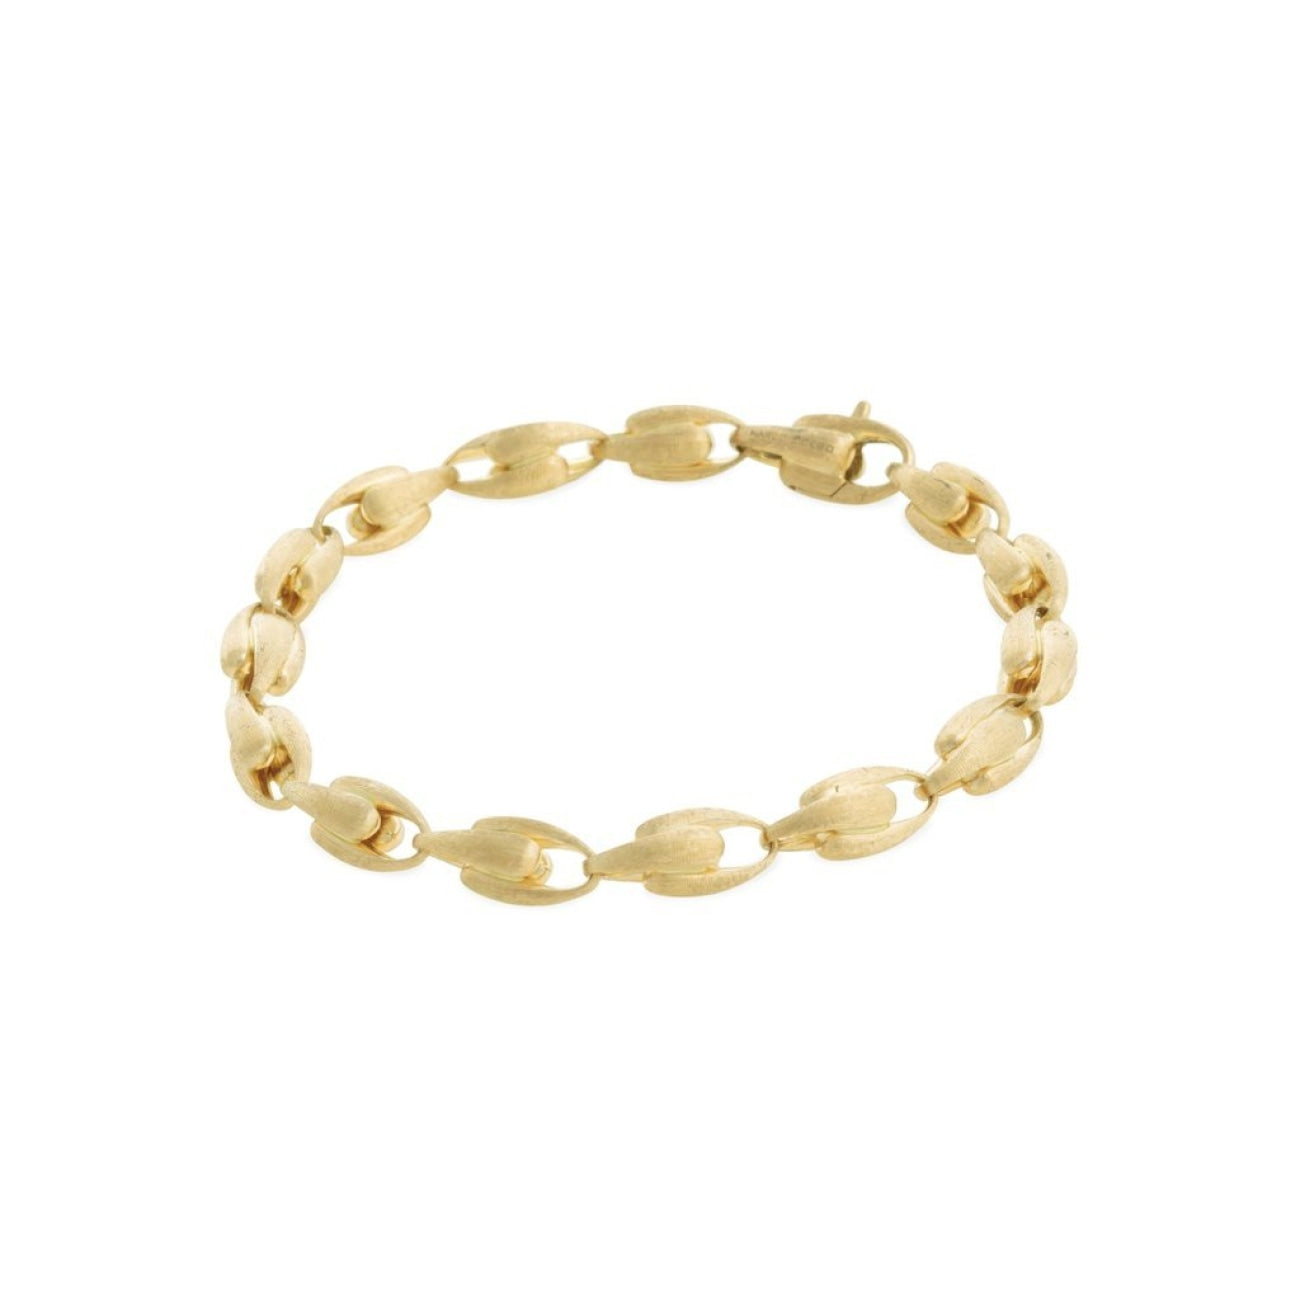 Marco Bicego Jewelry - 18K Yellow Gold Small Link Bracelet | Manfredi Jewels